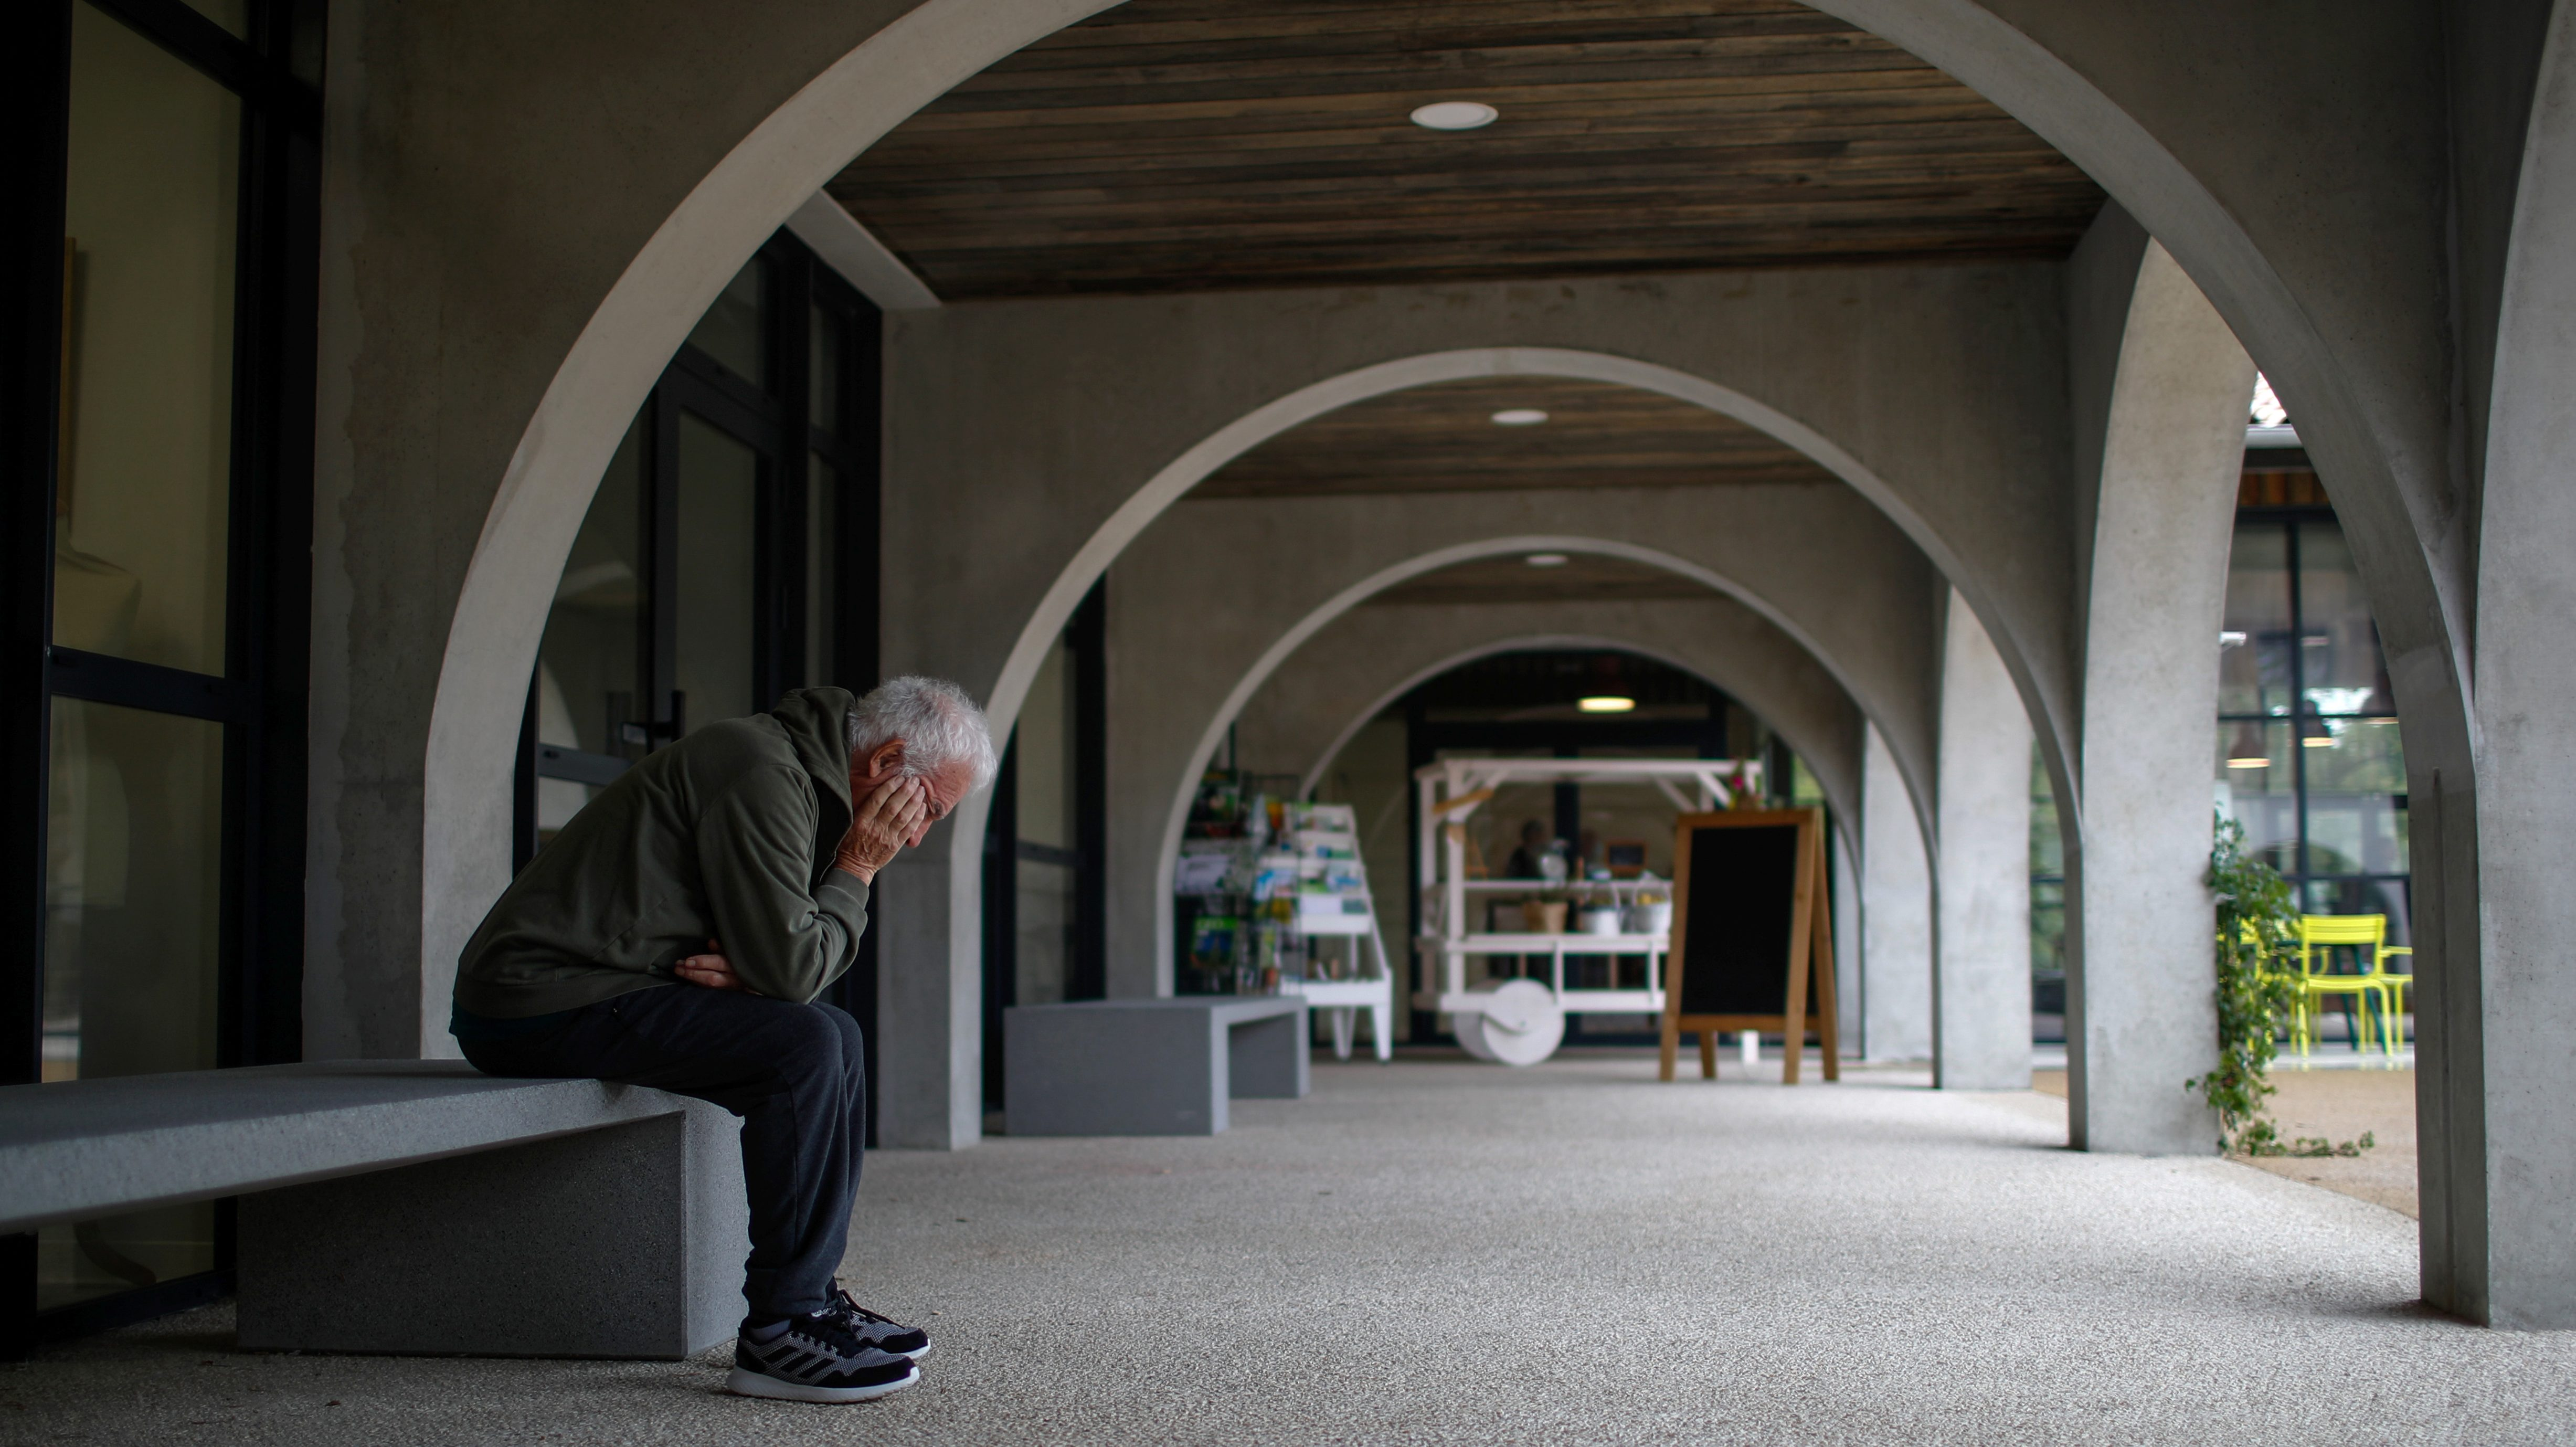 Alzheimer's patient rests on a bench